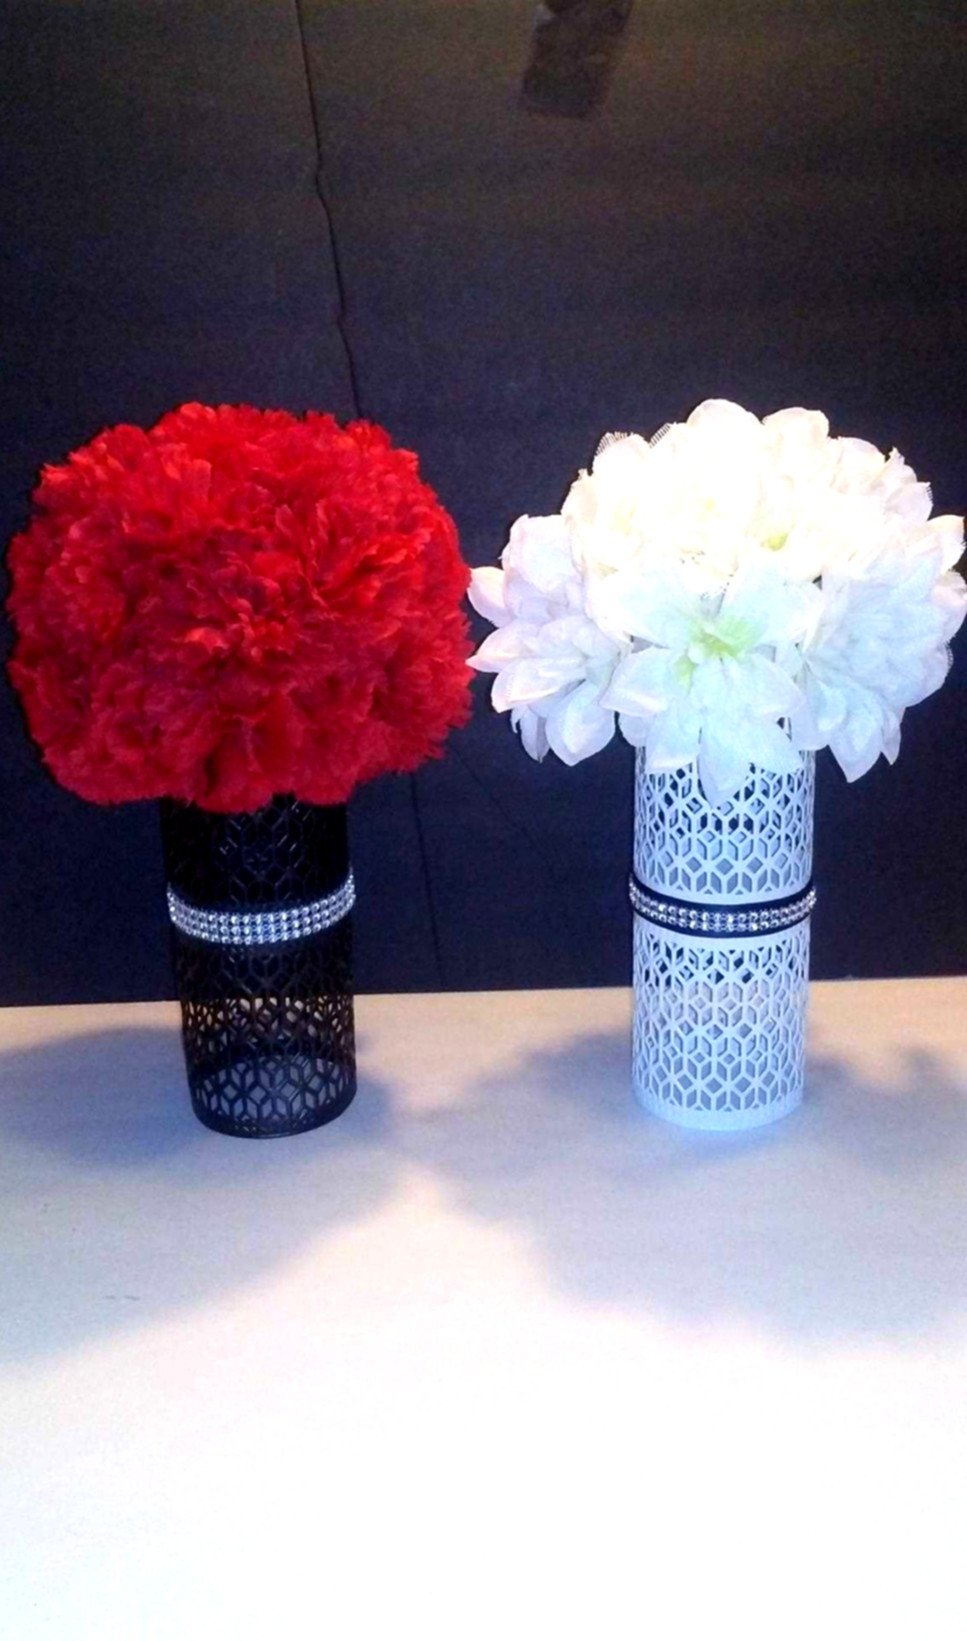 discount glass flower vases of diy dollar tree glam vases diy floral home decor one dollar pertaining to diy dollar tree glam vases diy floral home decor one dollar pictures